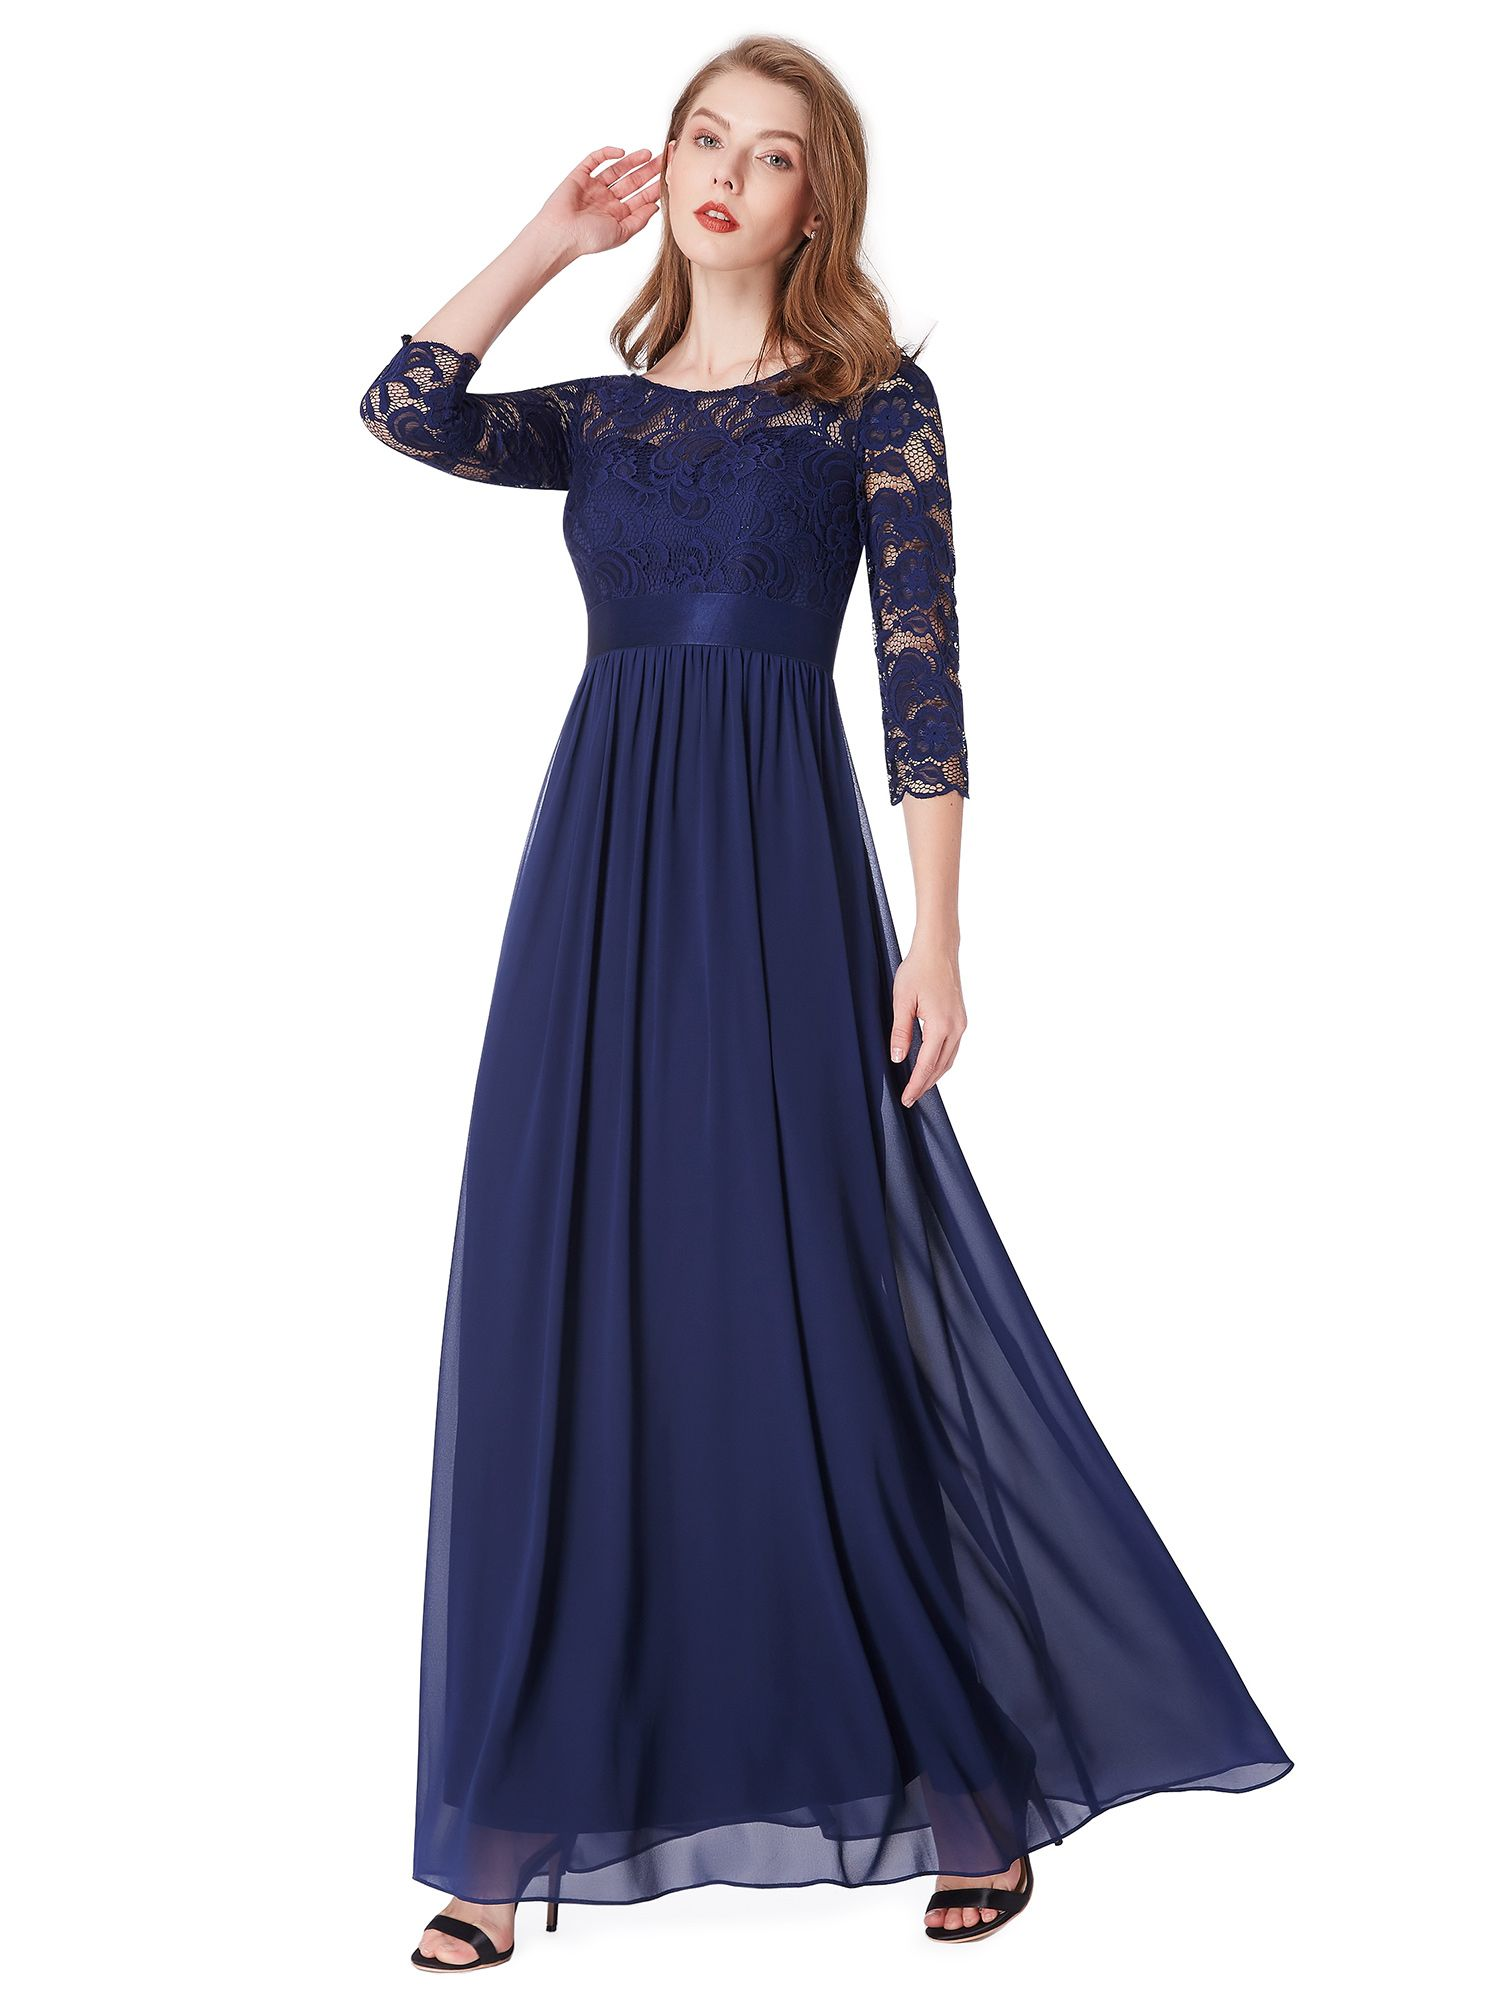 Ever Pretty Ever Pretty Women S Lace Patchwork A Line Maxi Mother Of The Brides Dresses For Women 07412 Navy Blue Us26 Walmart Com Long Sleeve Dress Formal Long Navy Blue Bridesmaid Dresses Maxi [ 2000 x 1500 Pixel ]